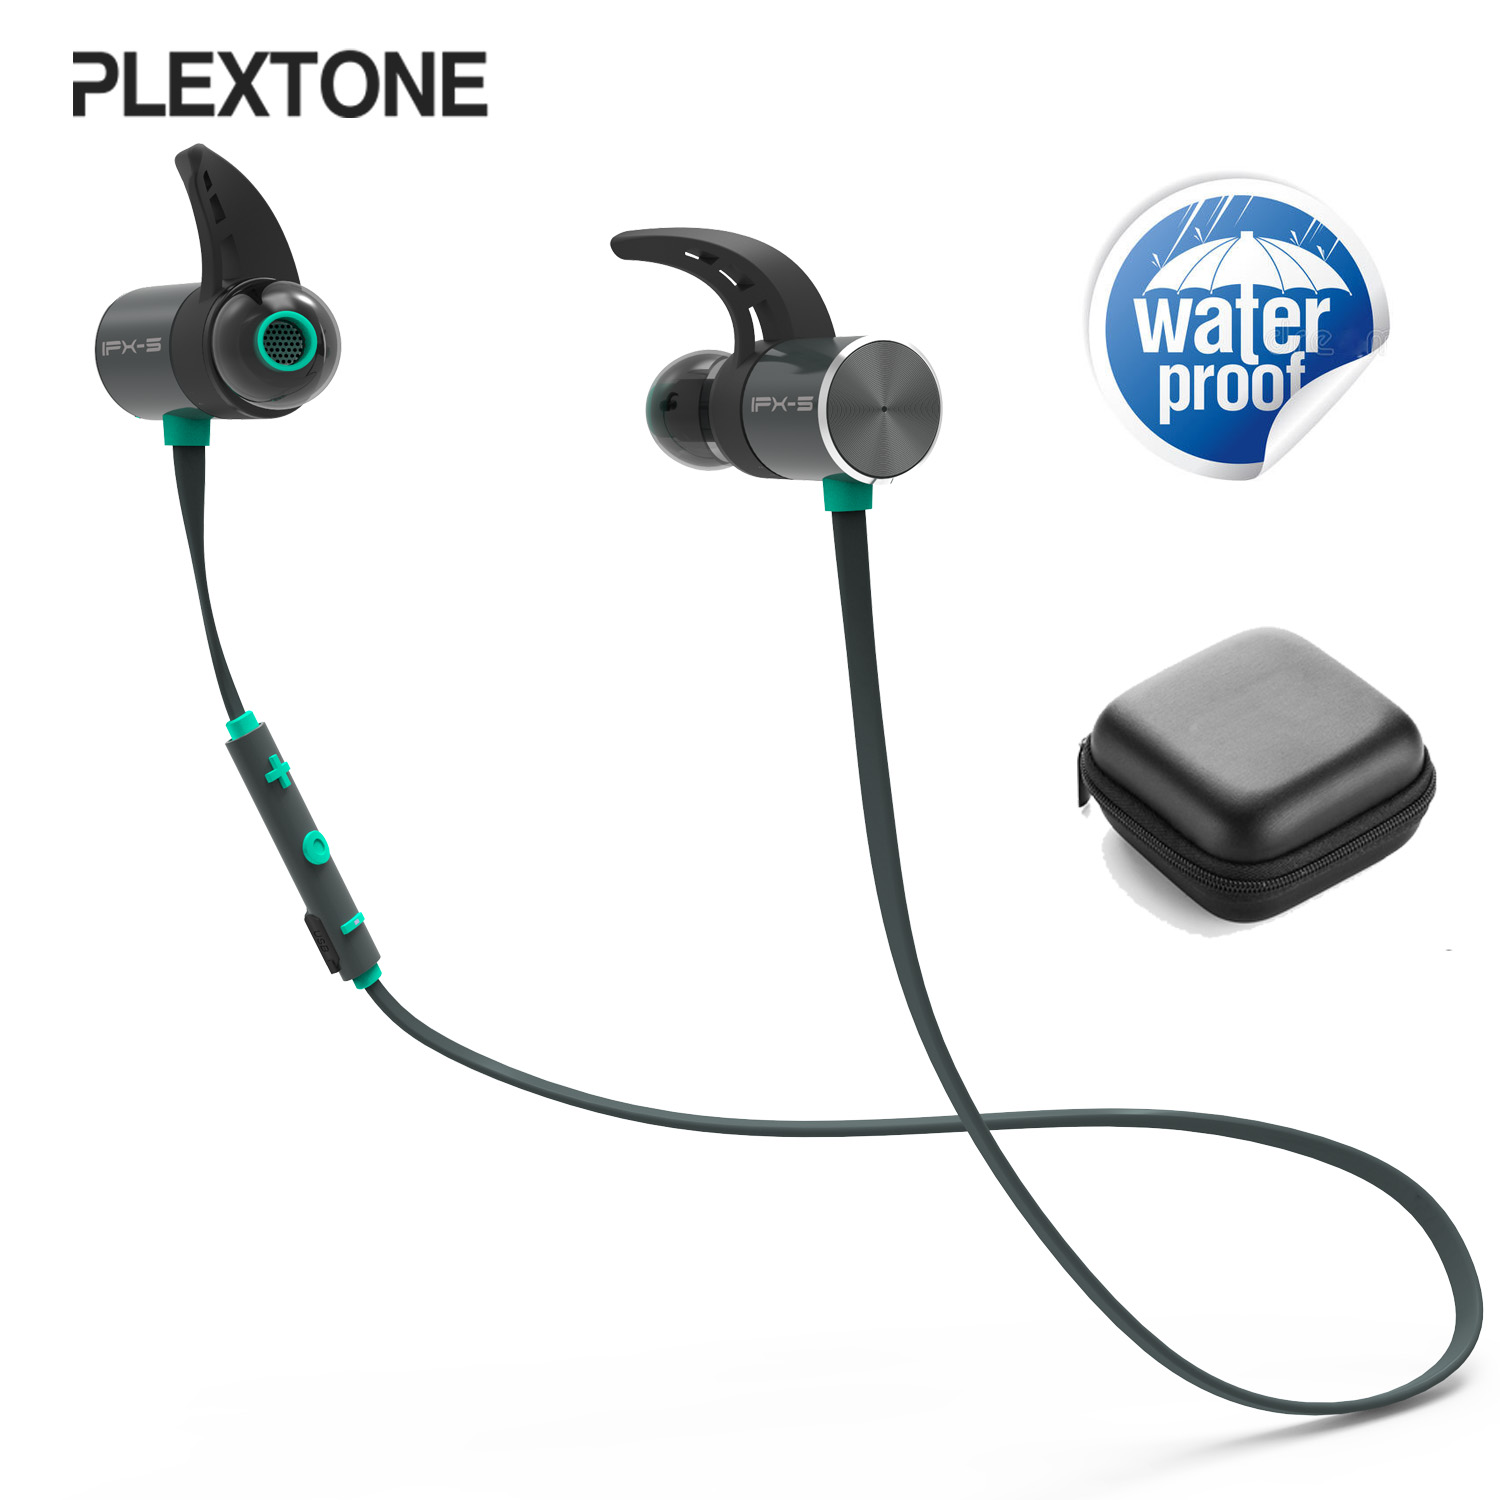 New BX343 Bluetooth Headphone Wireless IPX5 Waterproof Earphone Magnetic Earbuds Headset Skip-free Audio with Mic for Phone awei a920bls 4 1 bluetooth headphone wireless earphone sports ipx5 waterproof headset ear hook hands free with mic for phone